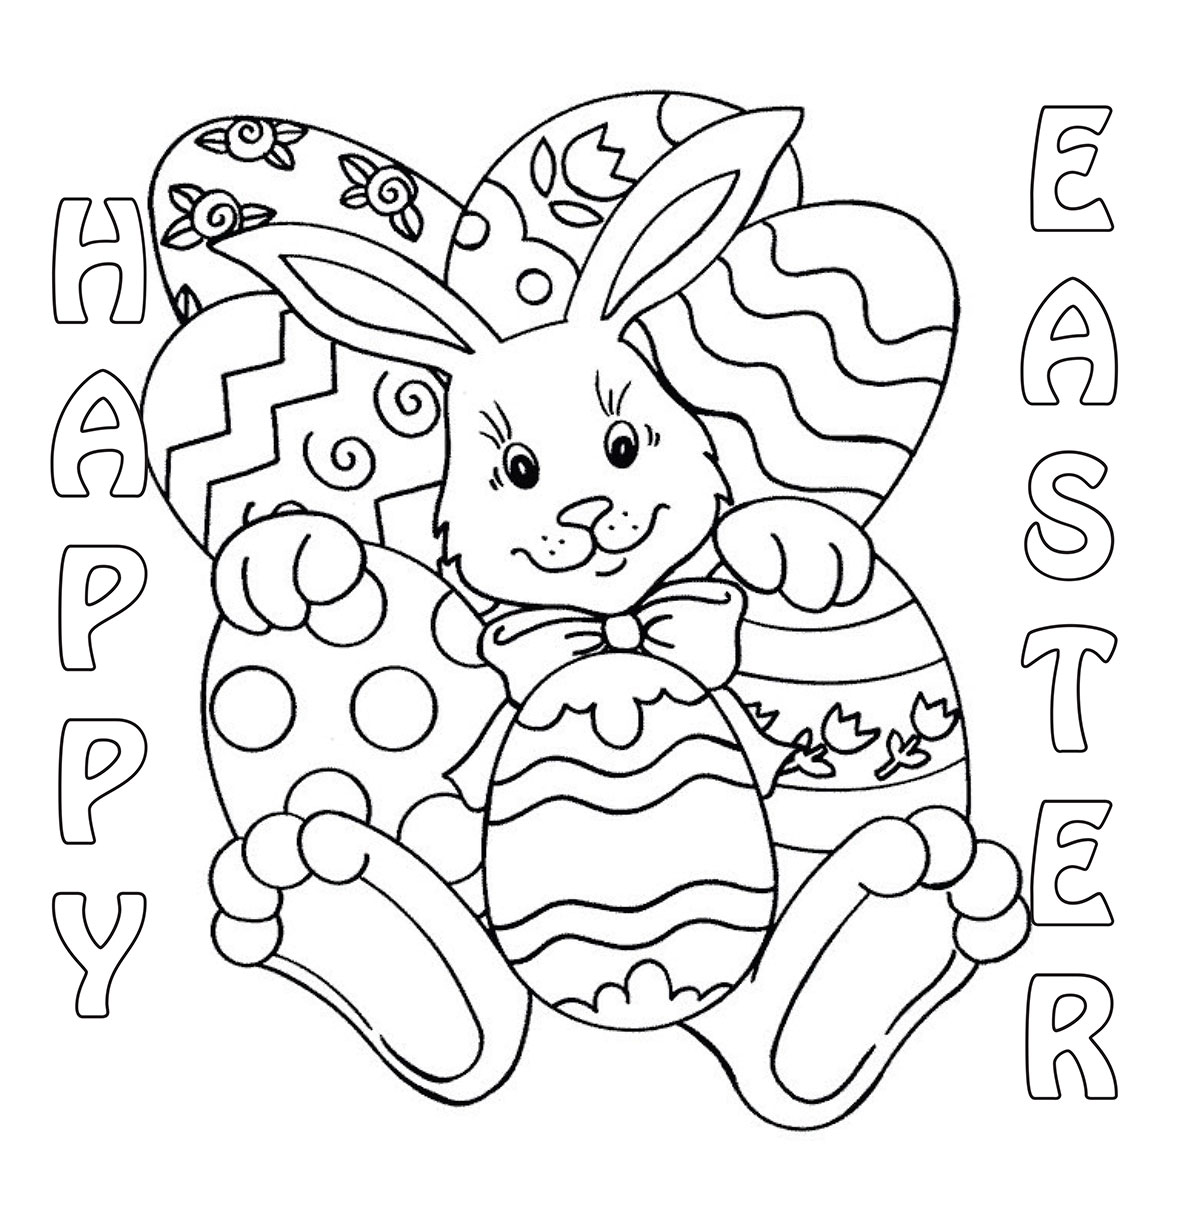 coloring book pages for easter - photo#7